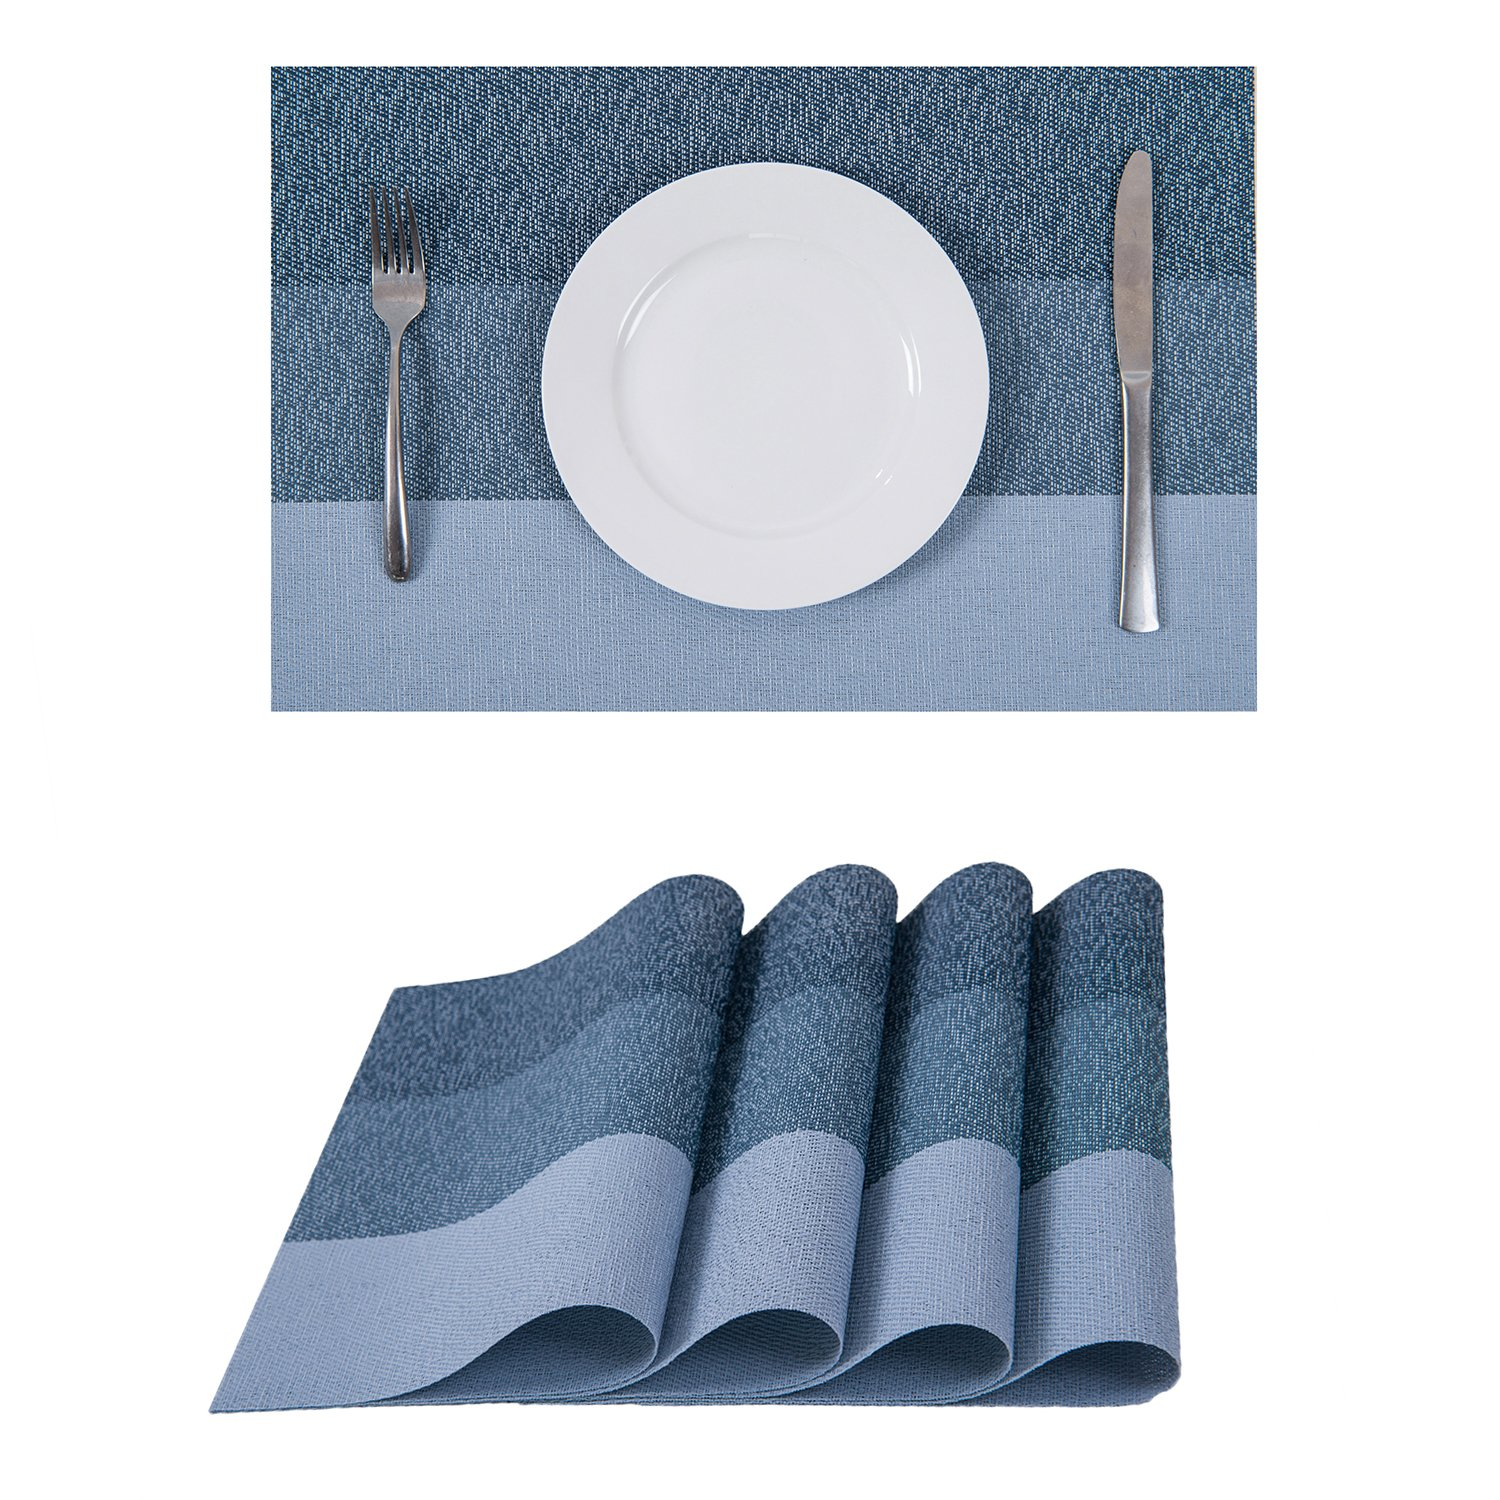 (Style5:sky) - Set of 4 Placemats,Heat-resistant Placemats Stain Resistant Washable PVC Table Mats(Sky)  Style5:sky B074LJ4DHC